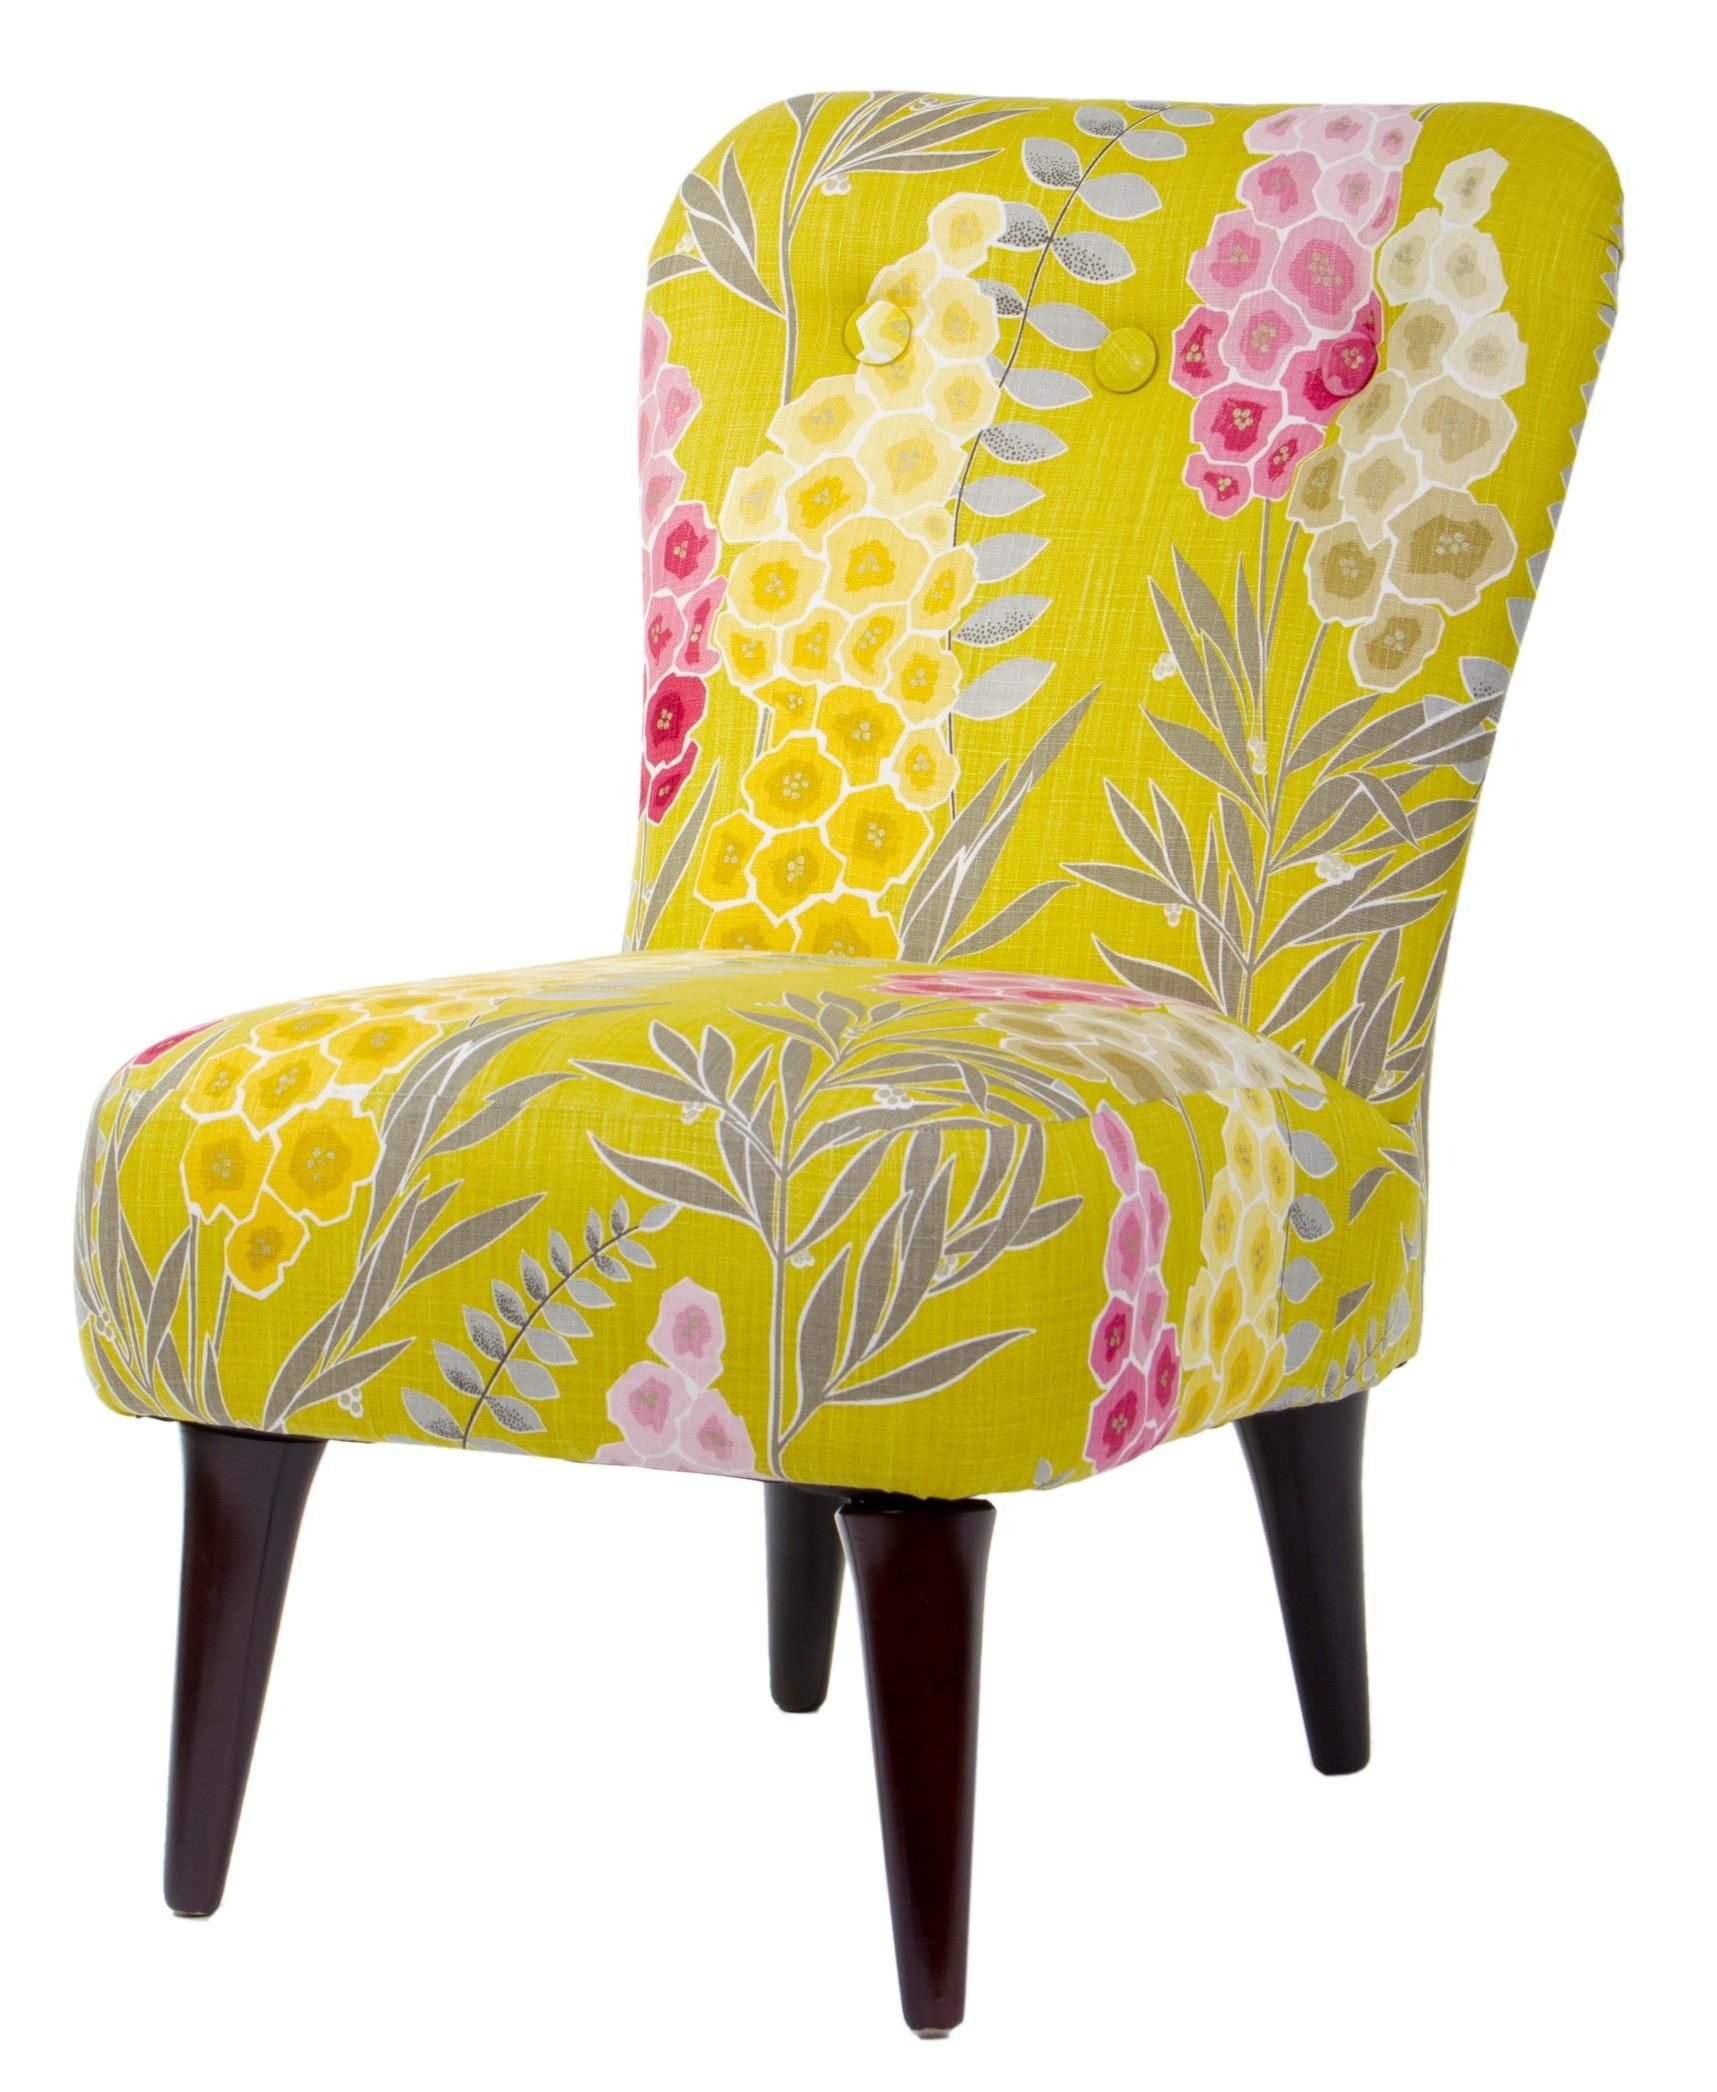 Floral Upholstered Chair. Upholster Mine in a Mint Color